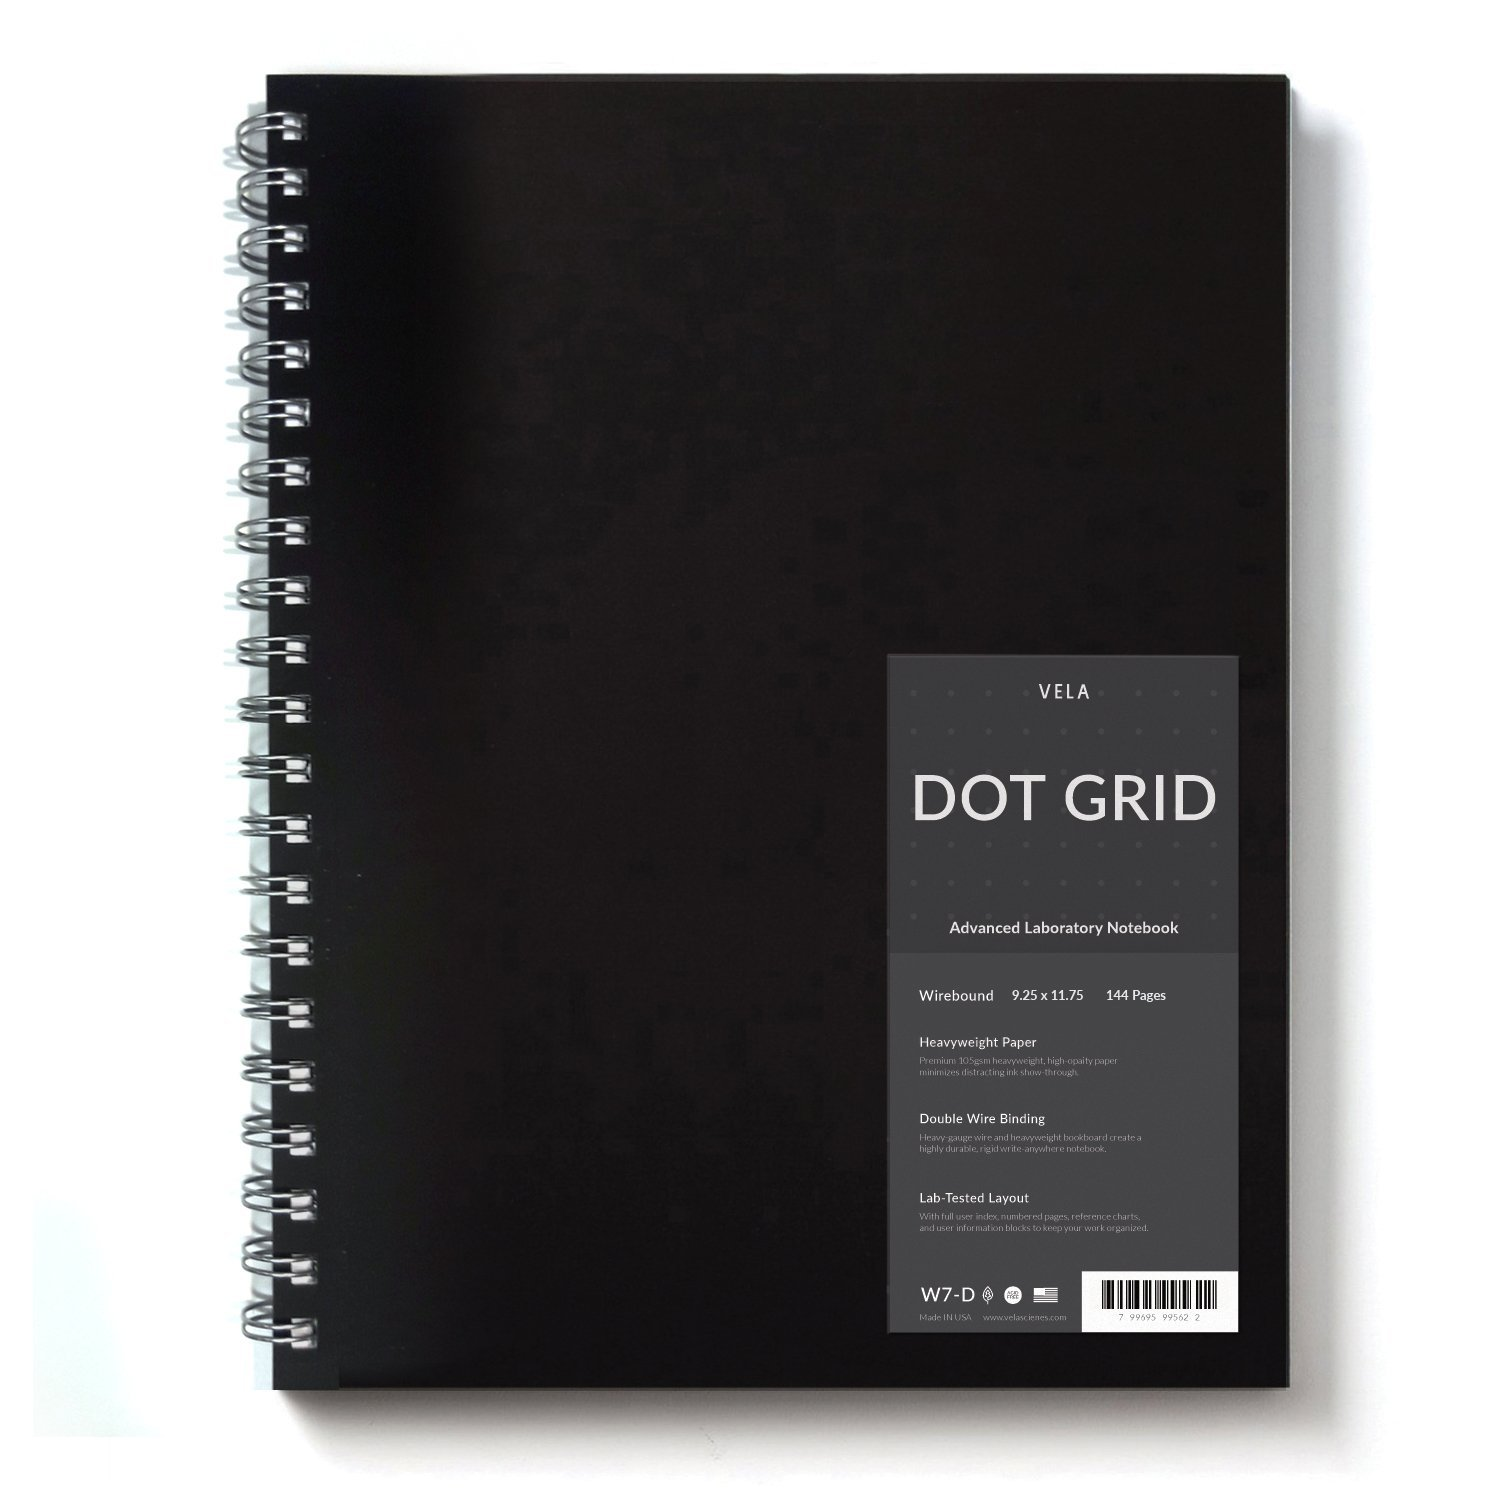 Vela Advanced Wirebound Laboratory Notebook / 9 x 11.75 inches / 144 Pages/Reinforced Double Wire Binding/Wear-Resistant Nylon Coated Cover / 105gsm Heavyweight Paper (Dot Grid)